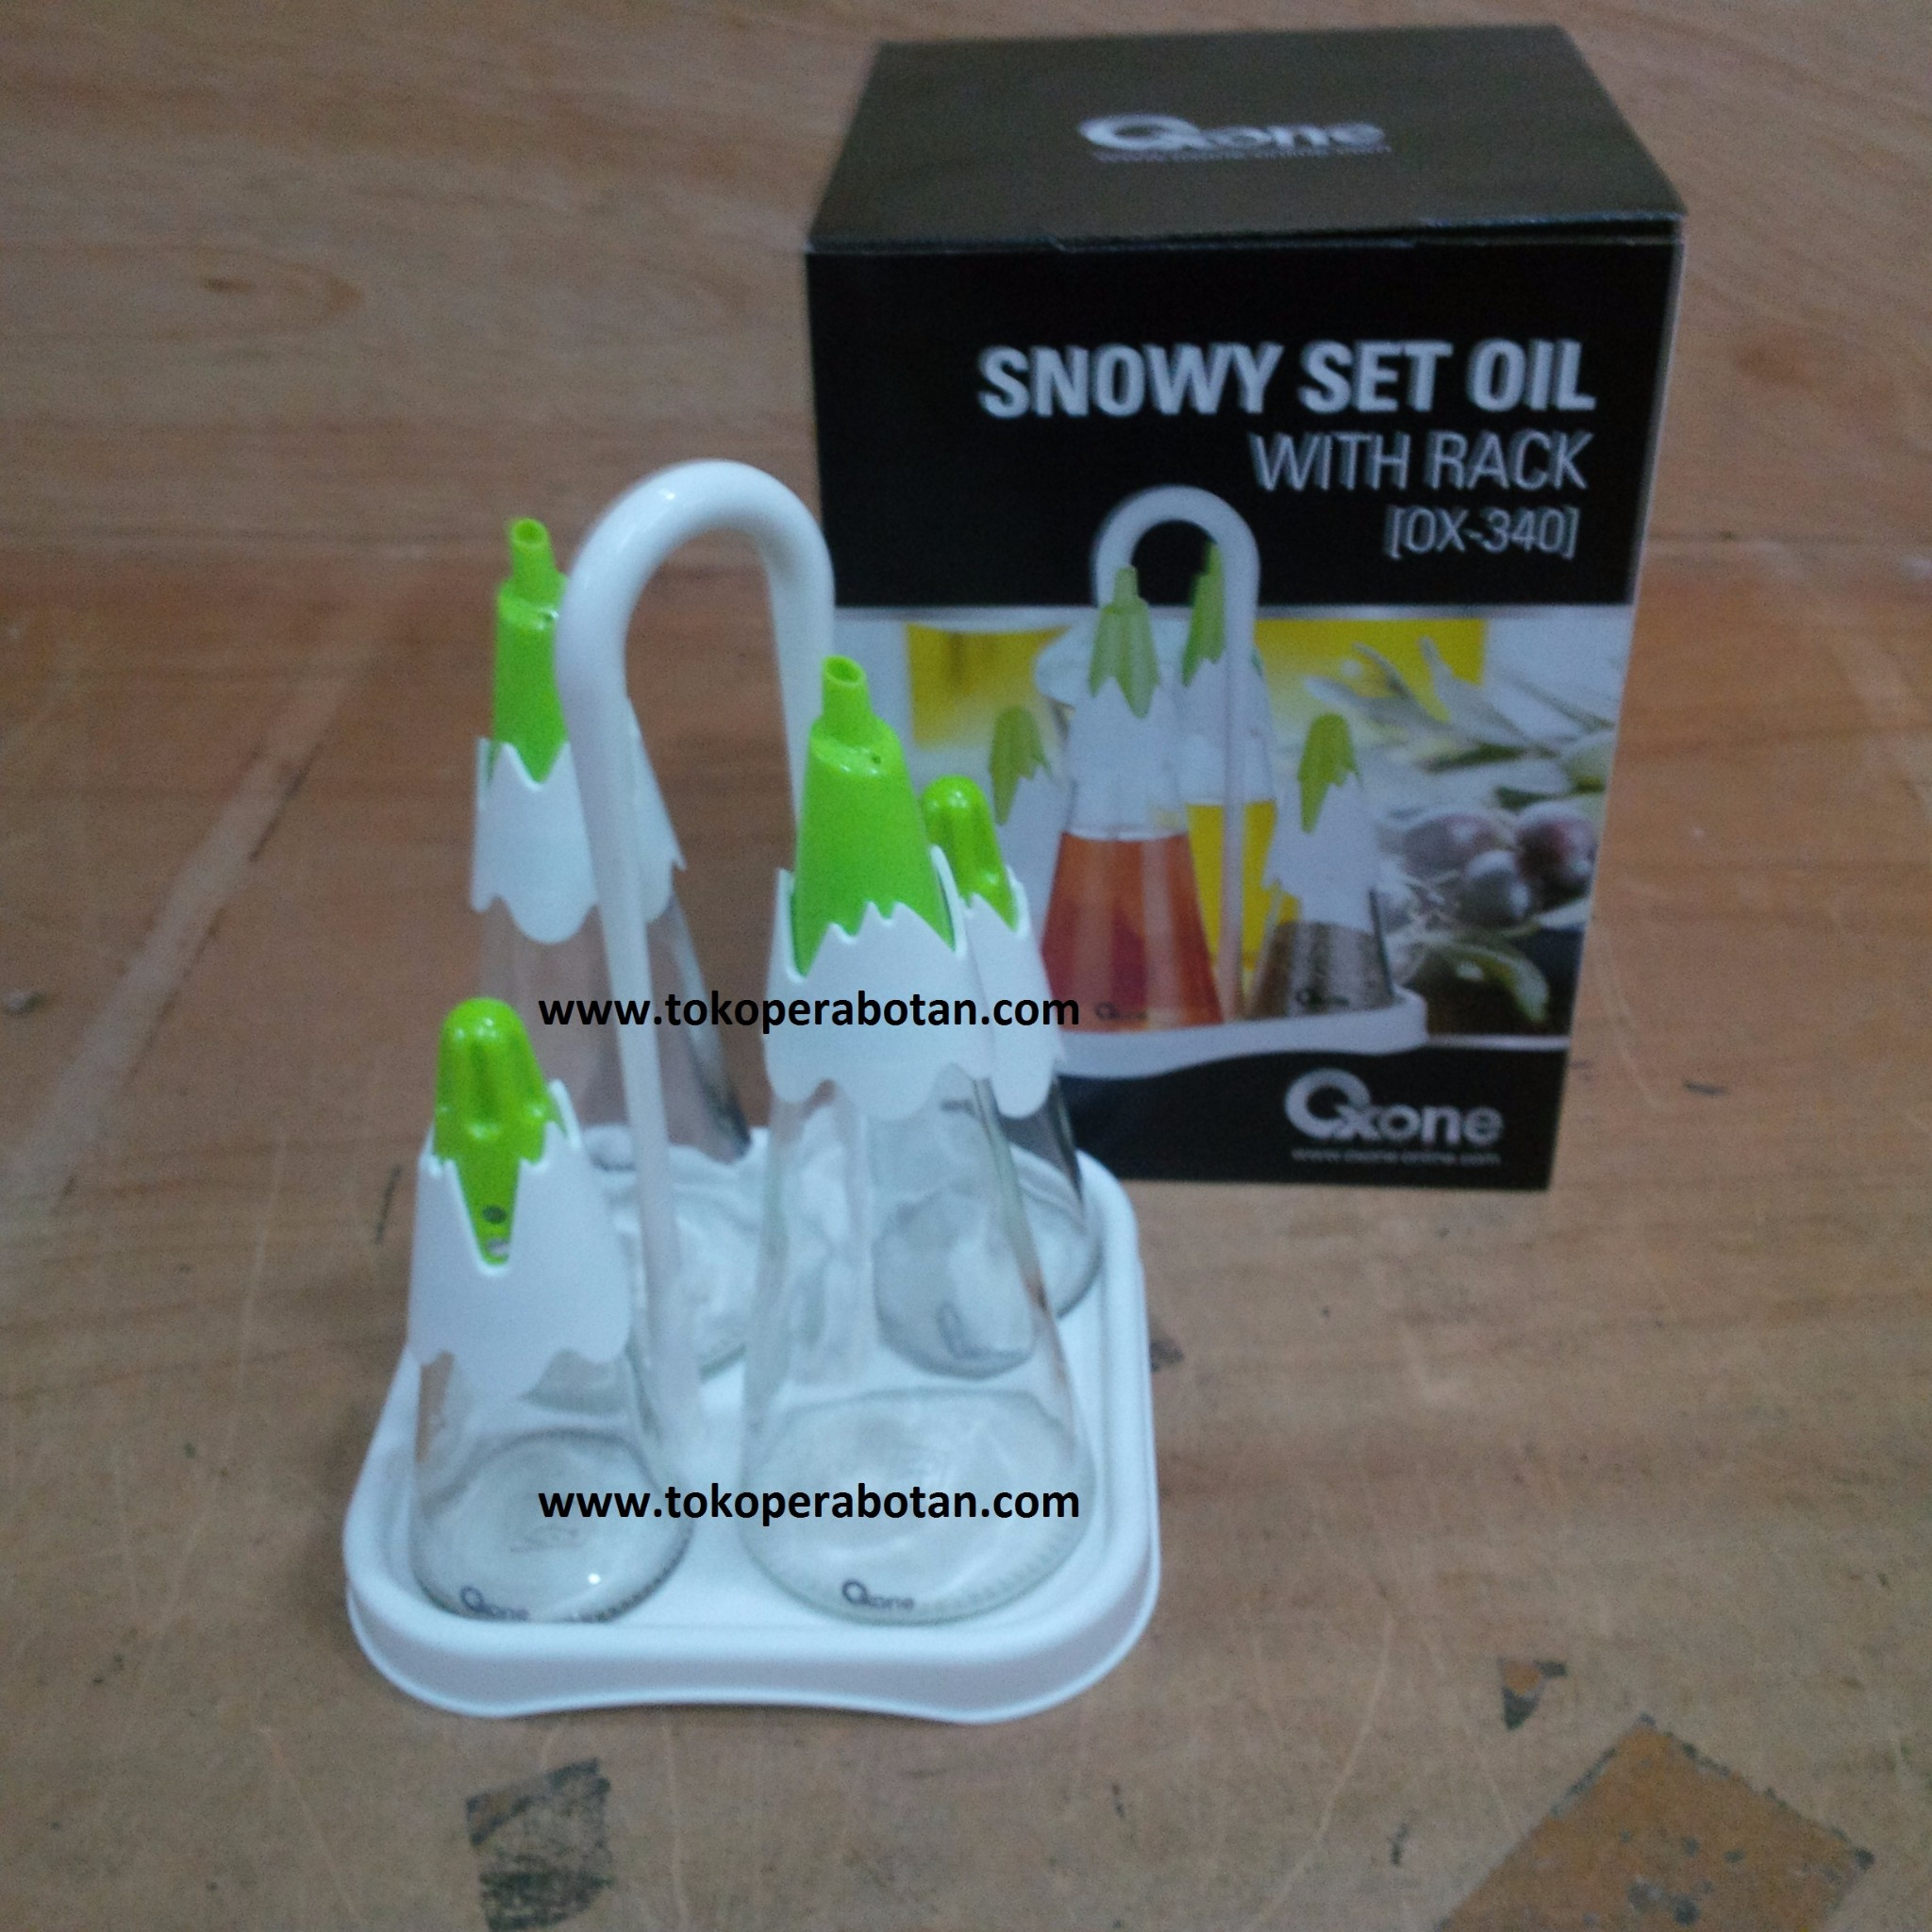 Jual (Packing Bubblewarp) Oxone Ox-340 Snowy set Oil / Tempat Bumbu Oxone